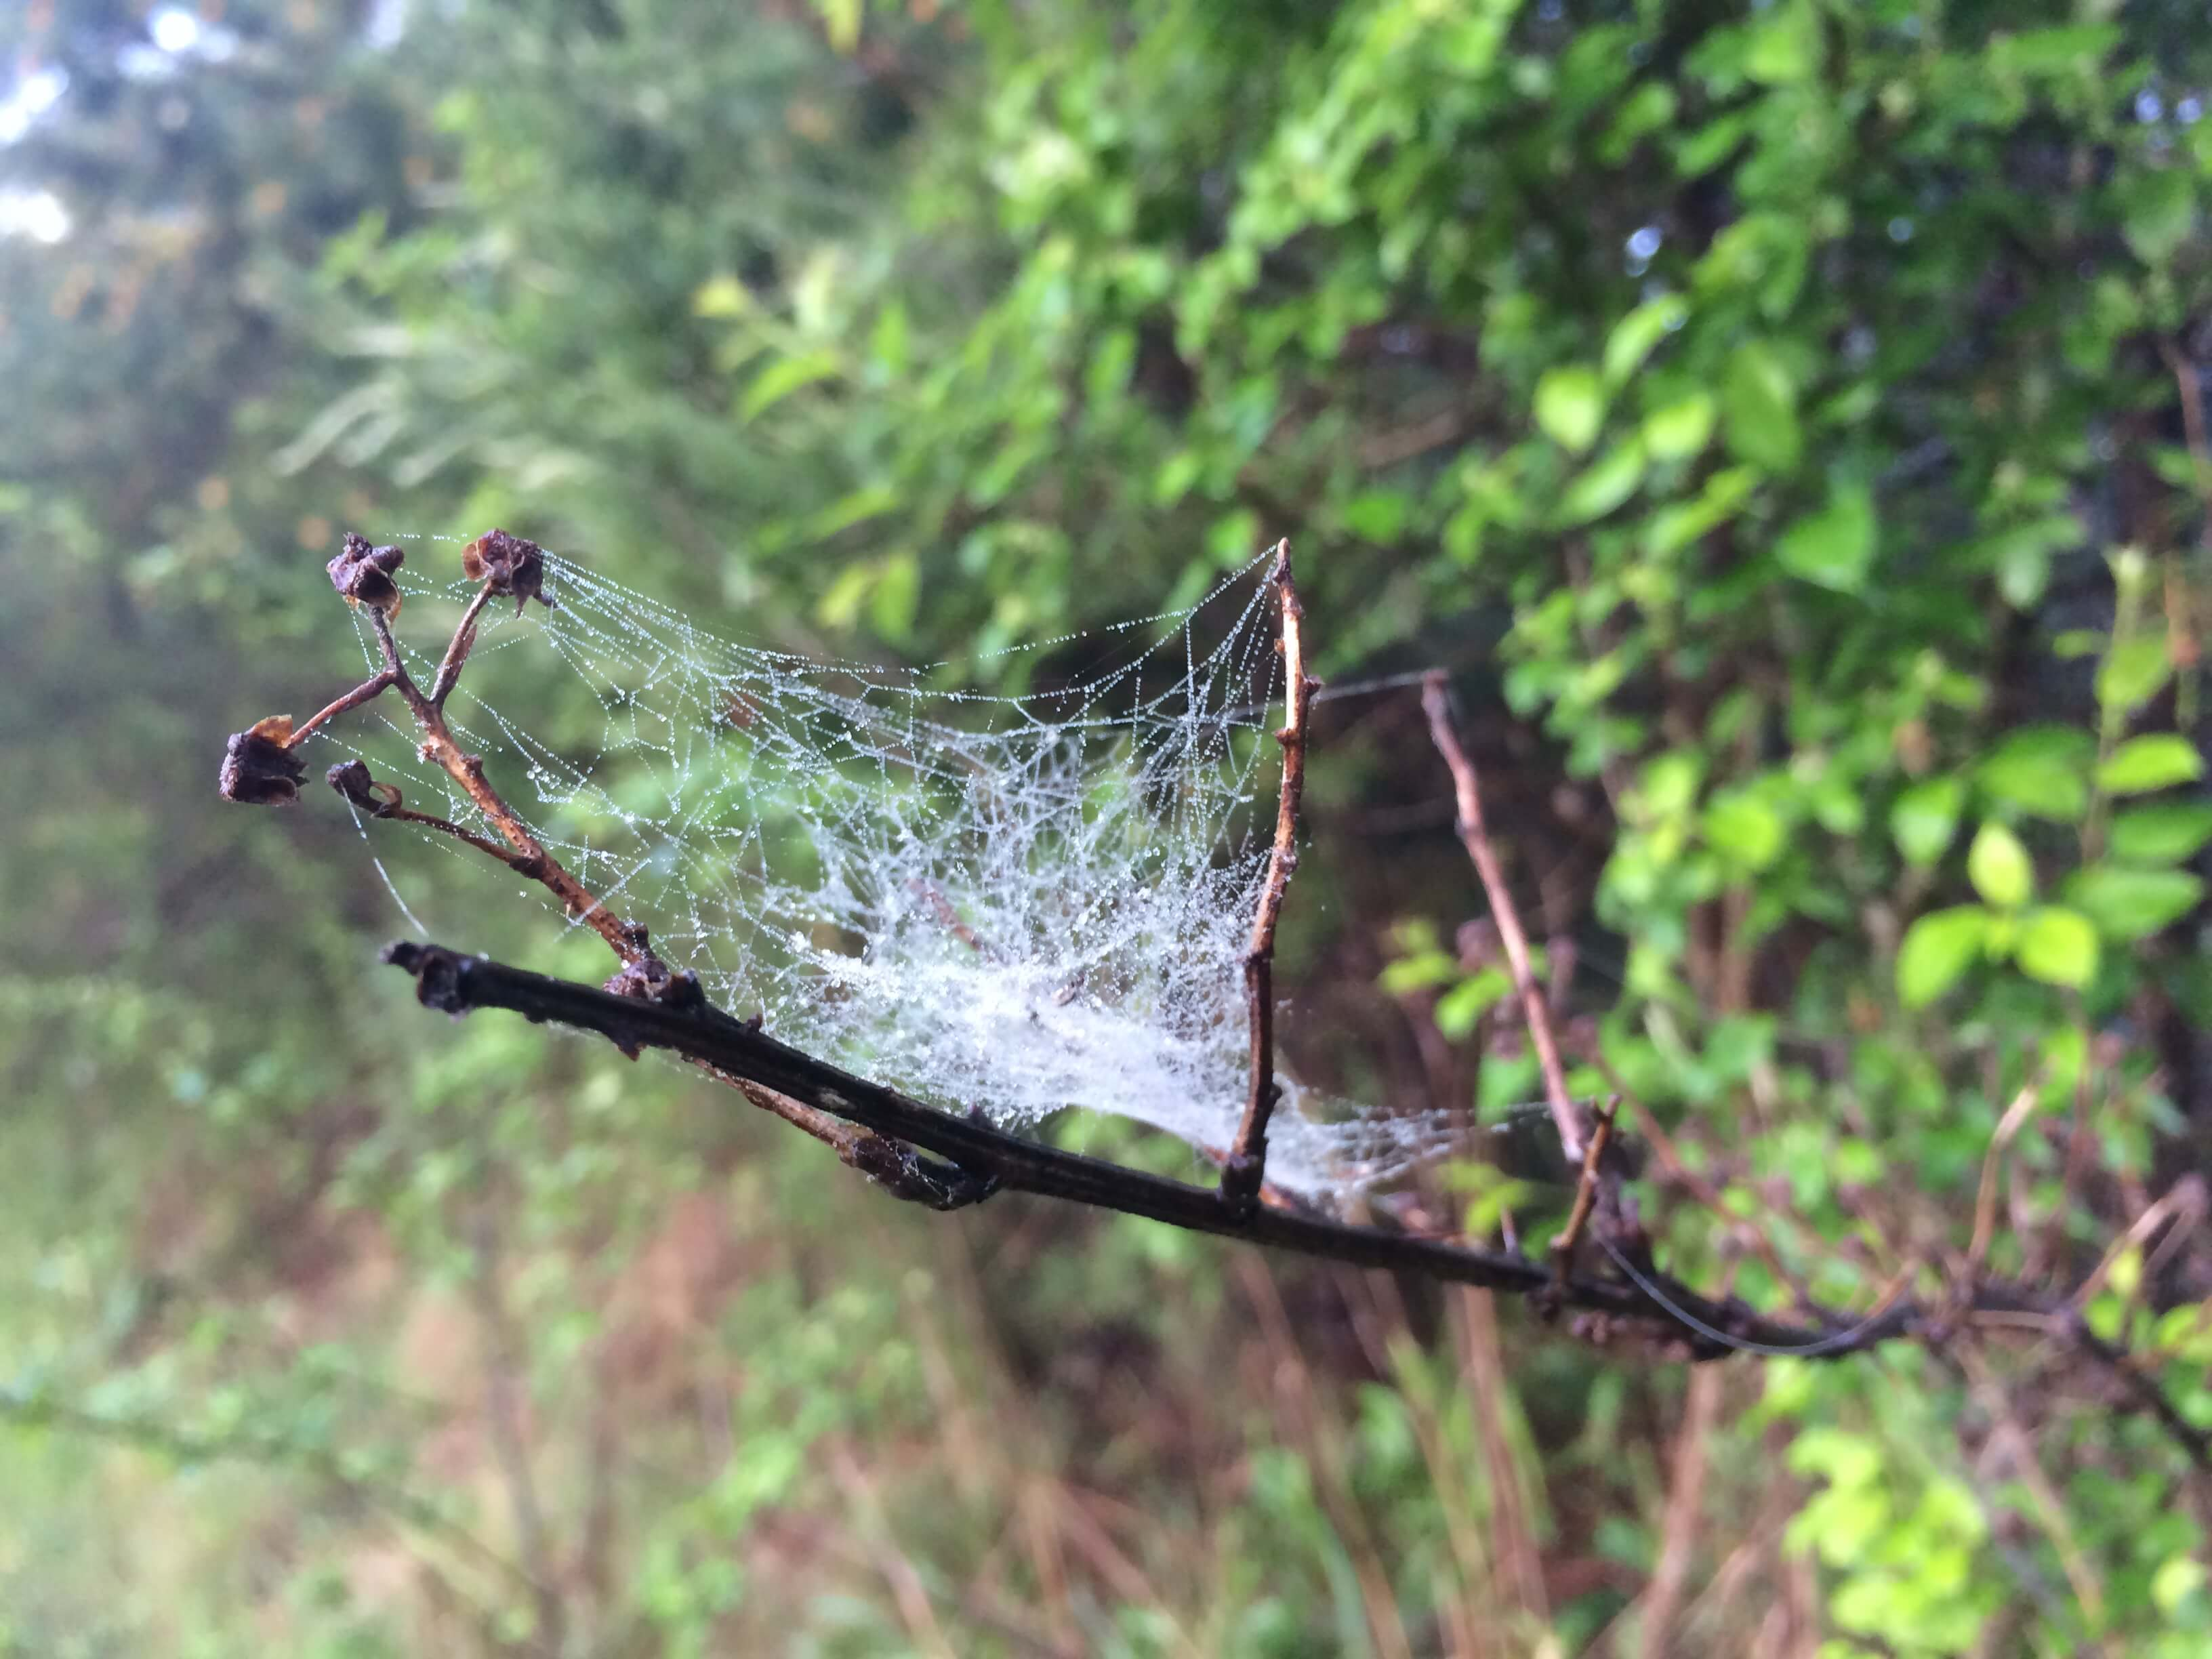 dew on a spider's web